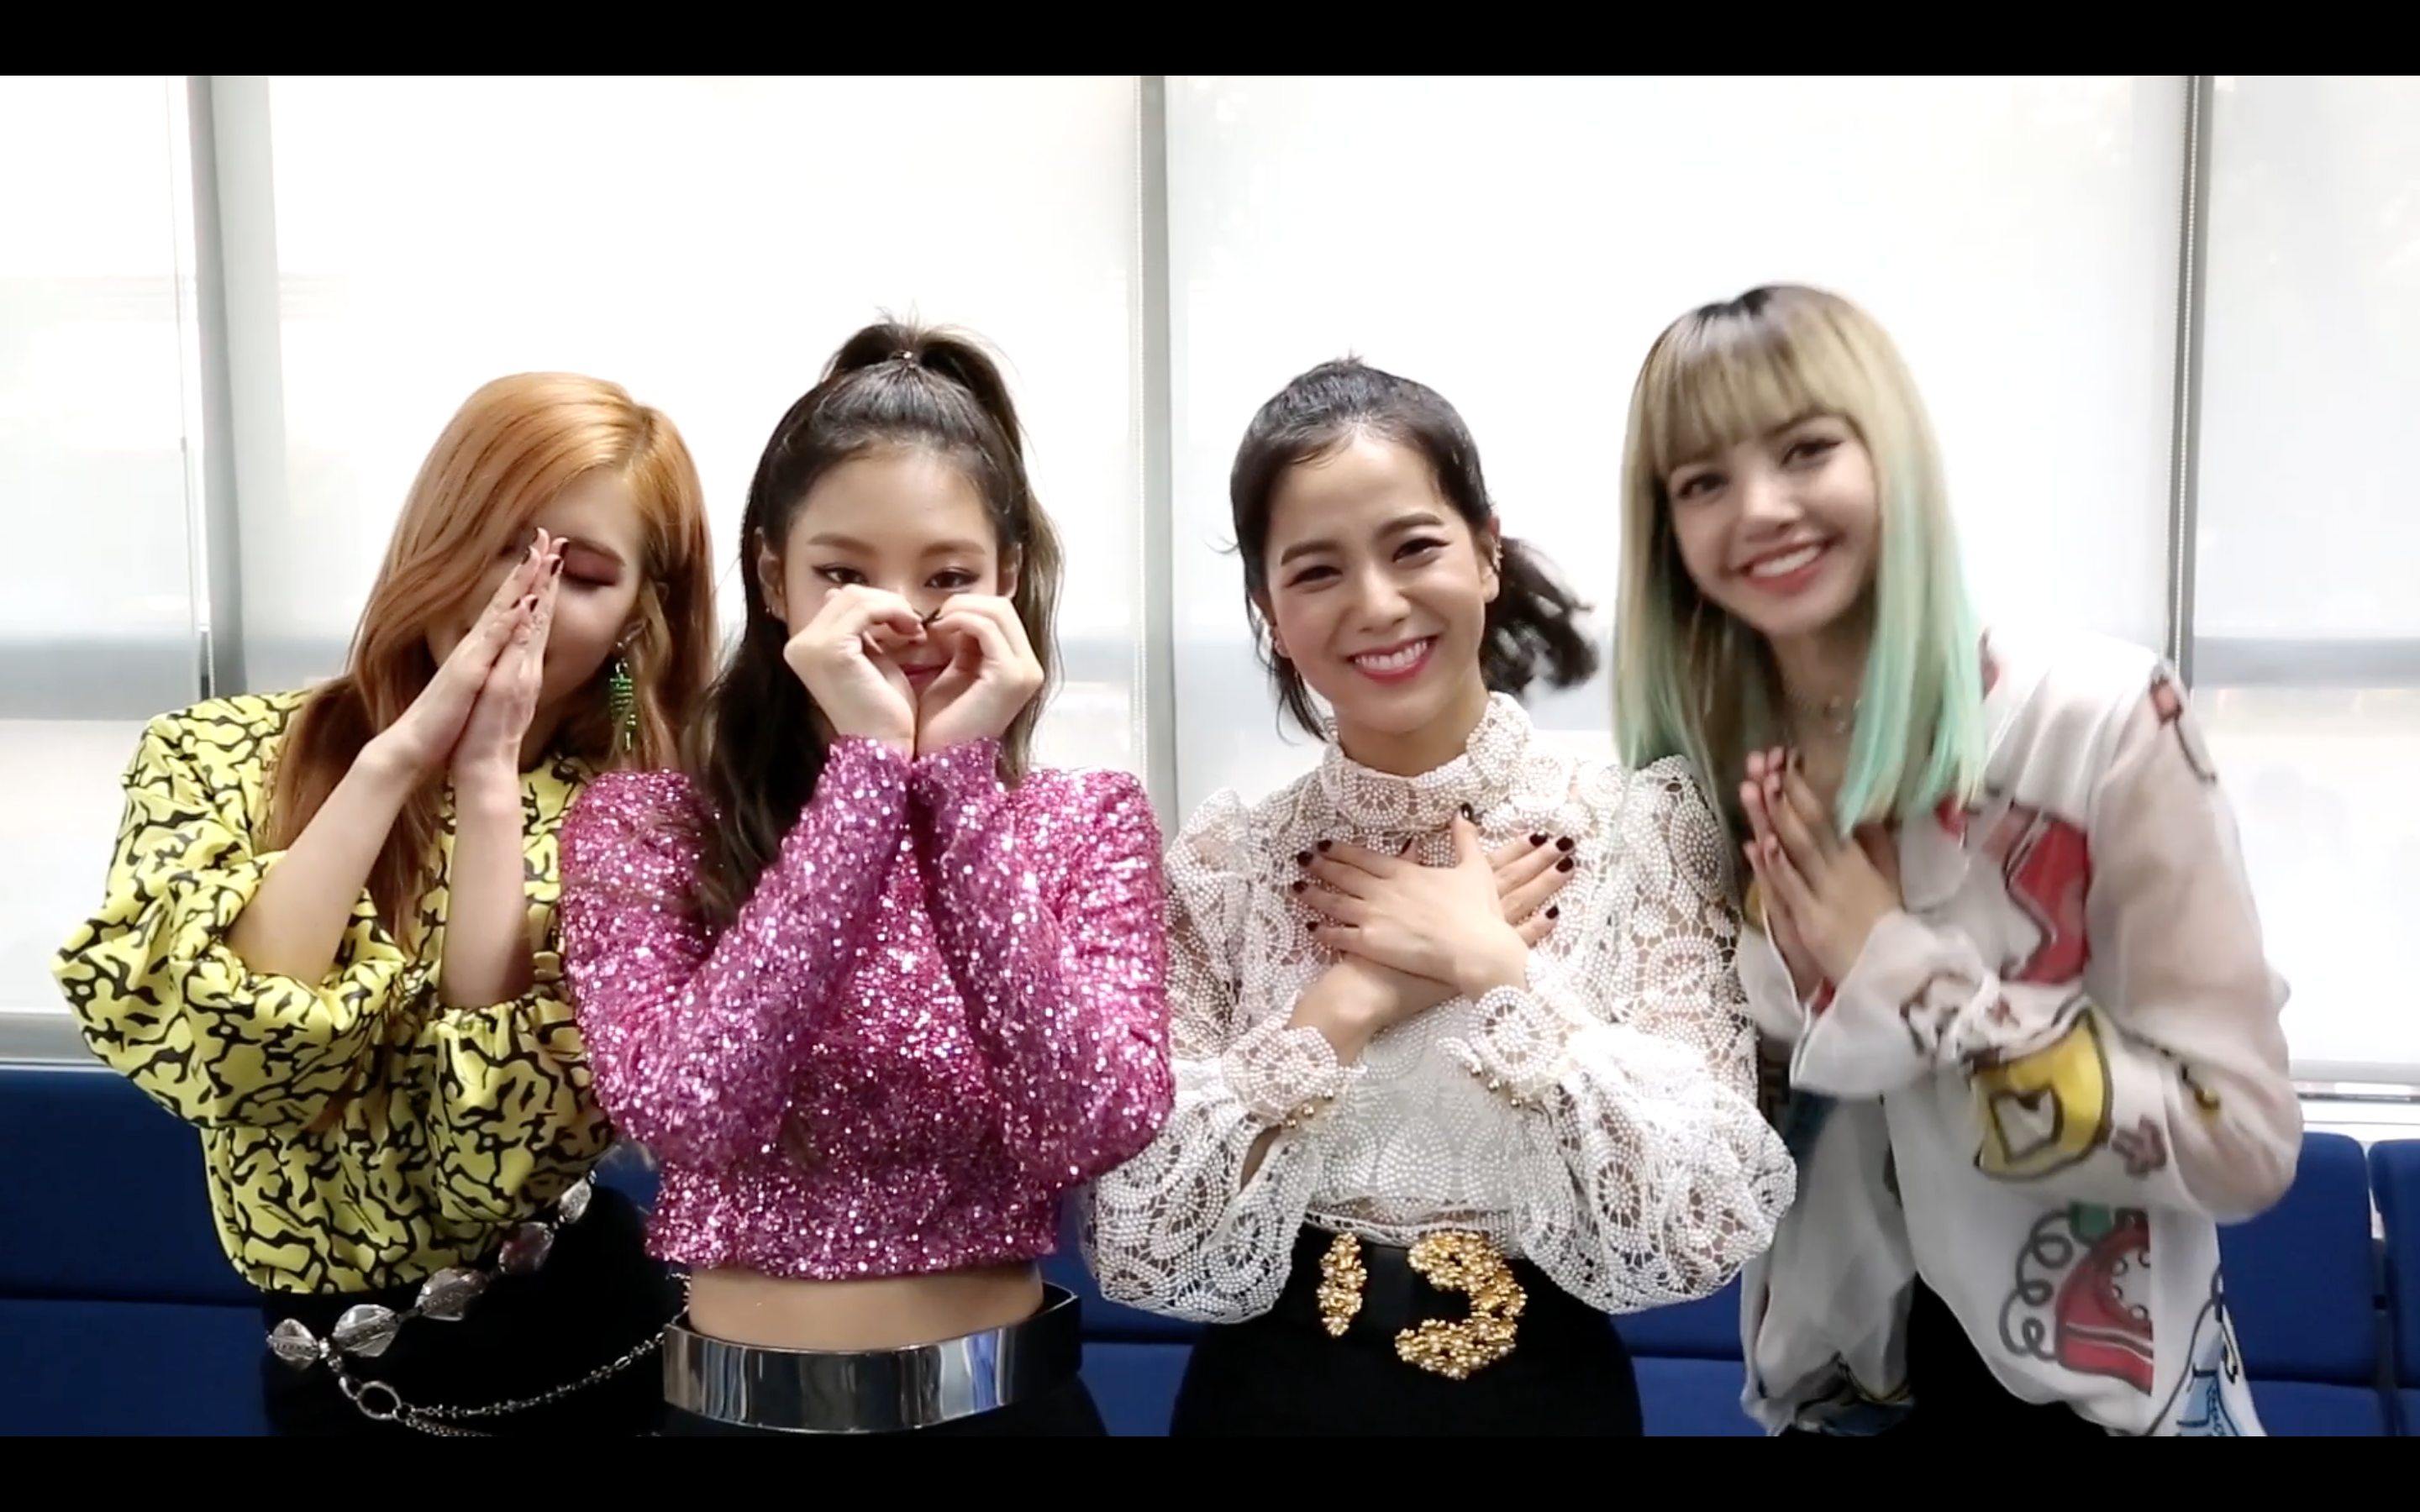 BLACKPINK - BEHIND THE SCENES #001